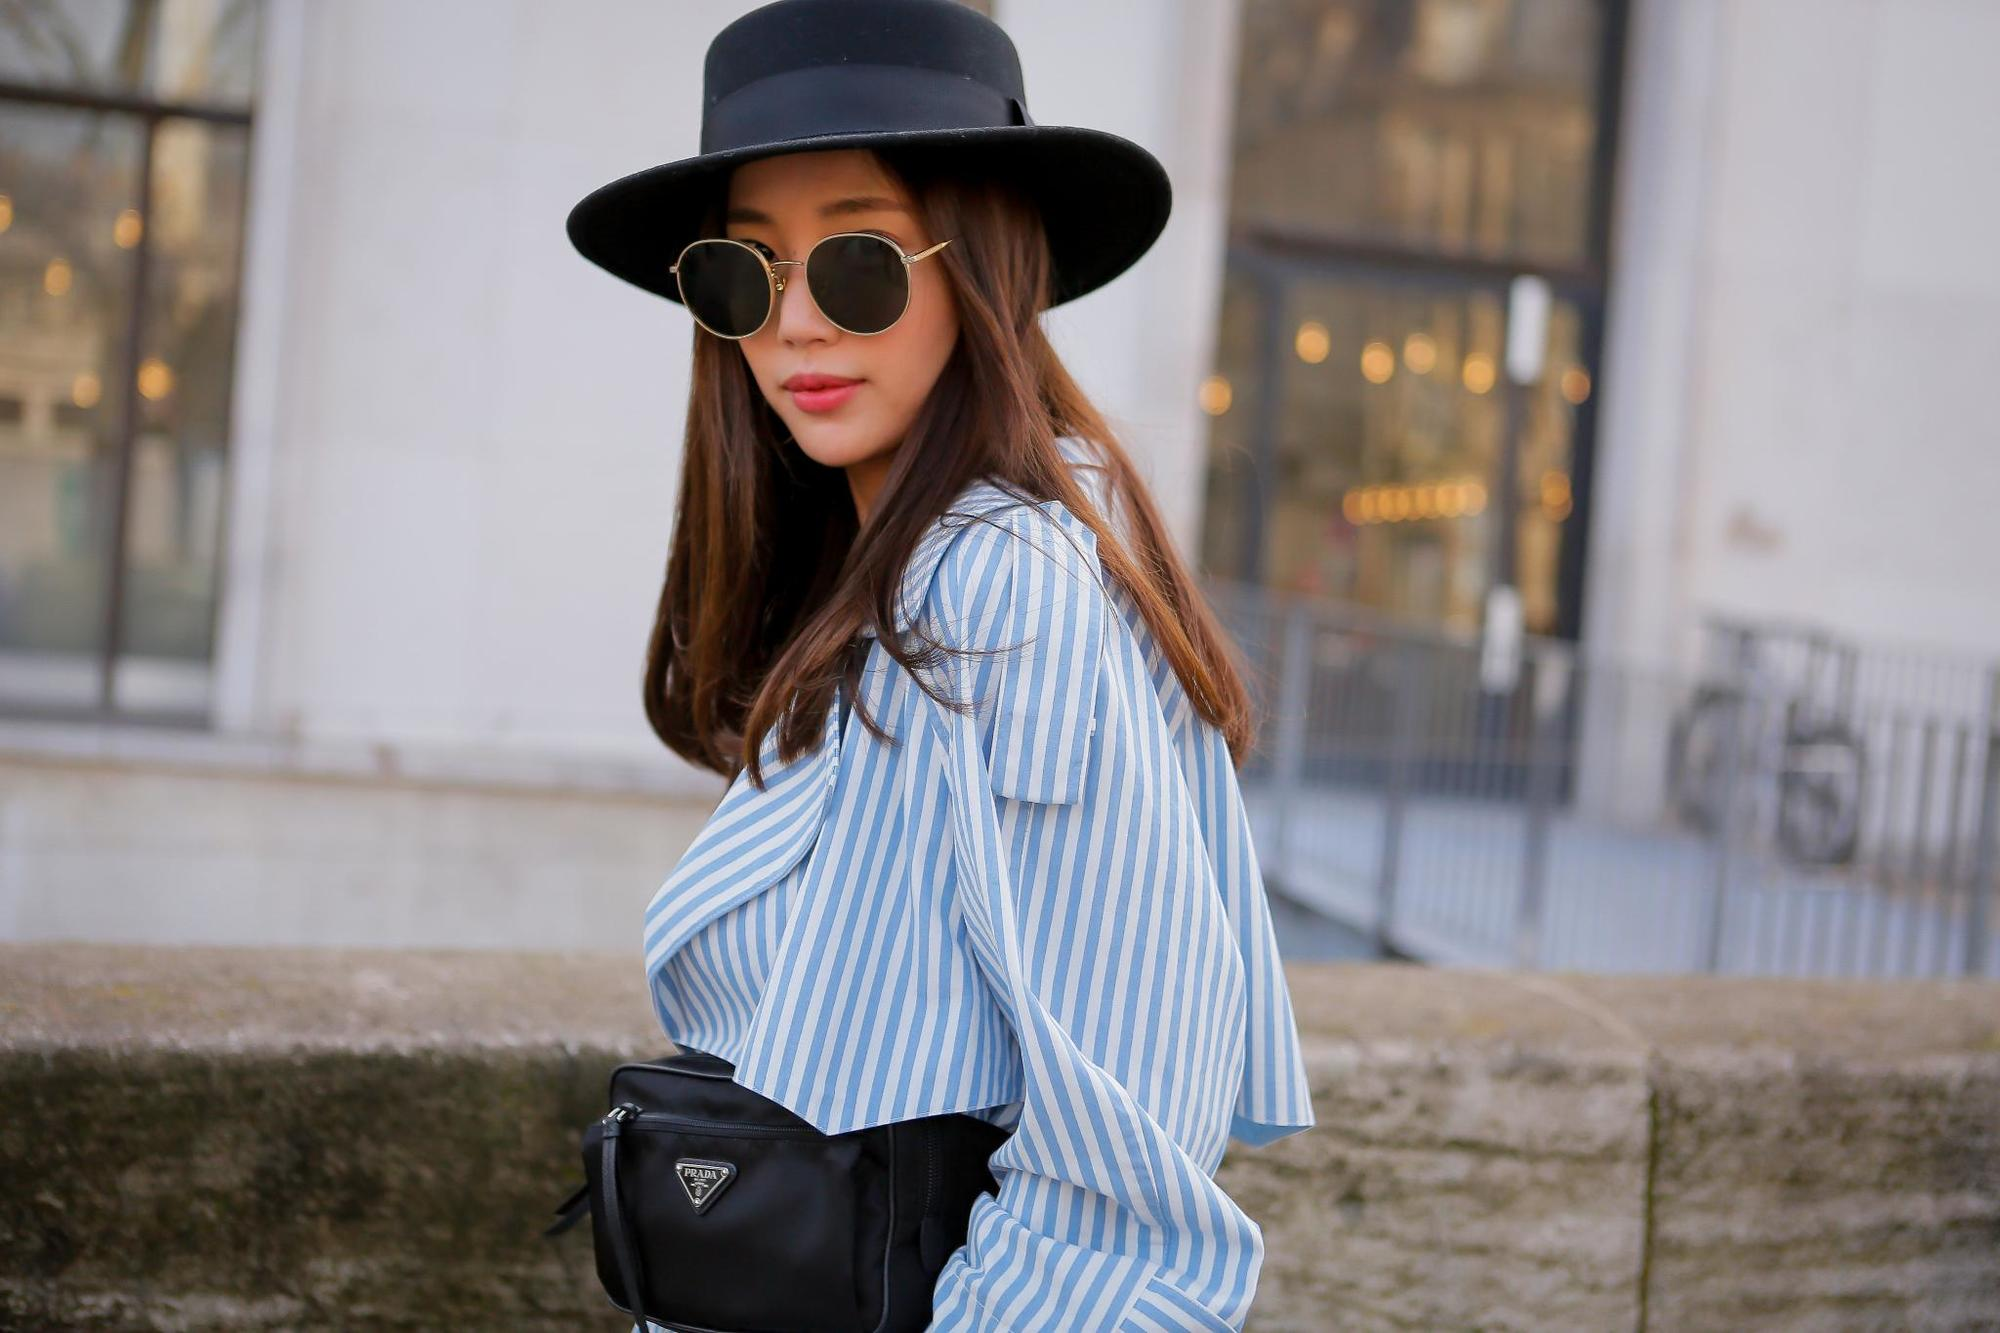 wide brim hat hairstyles: curled ends